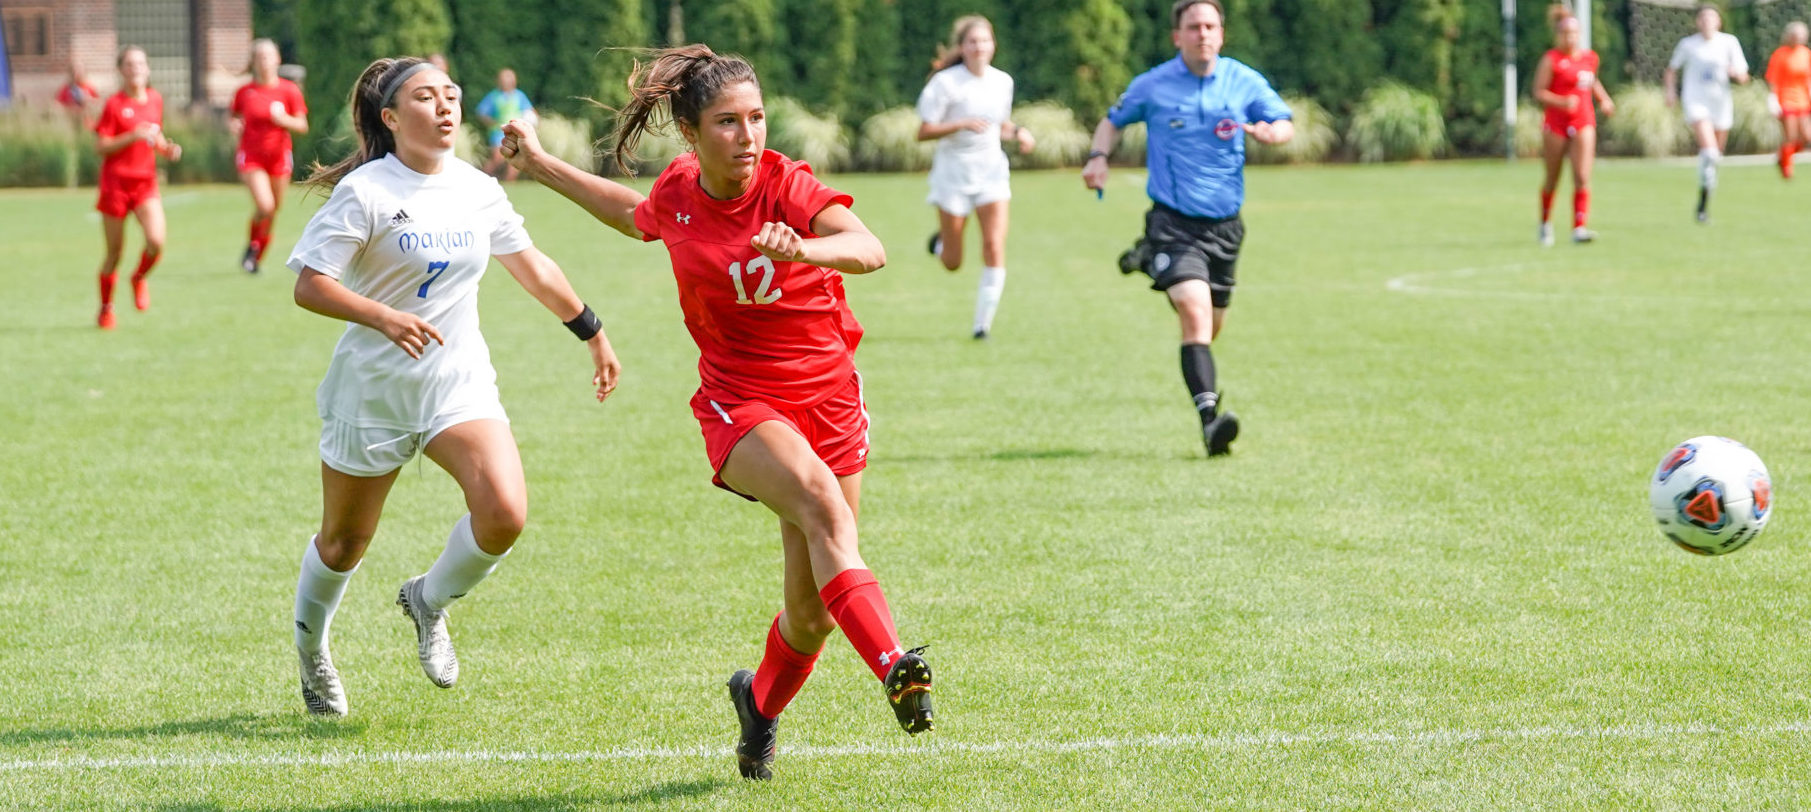 Spring Lake girls soccer team puts up a strong fight in first half, but loses to Bloomfield Hills Marion 3-0 in state finals